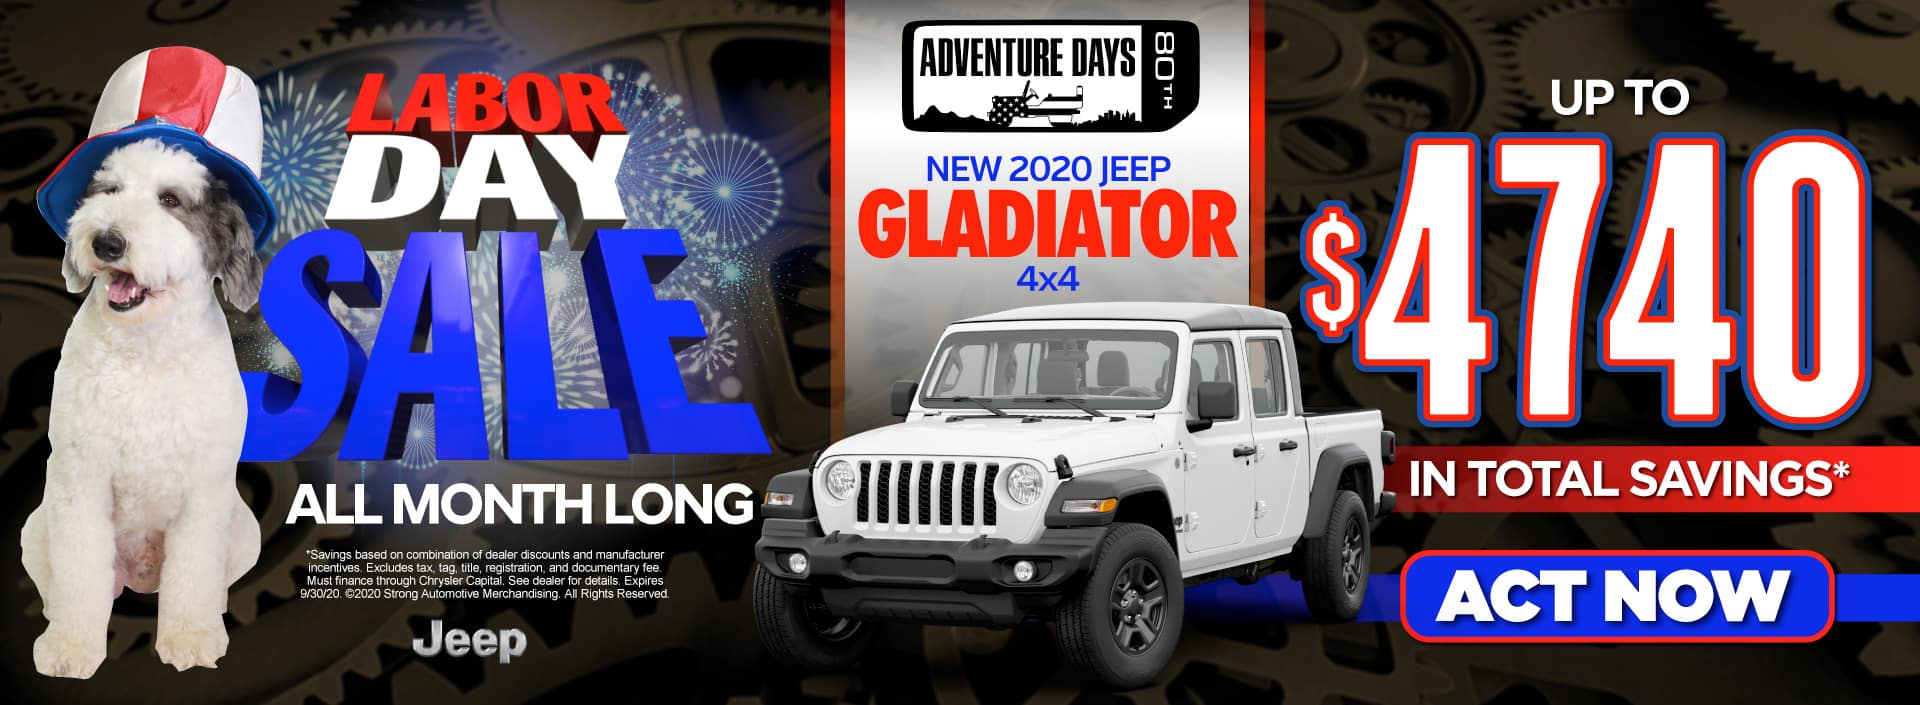 New 2020 Jeep Gladiator - Up to $4740 in savings - Act Now